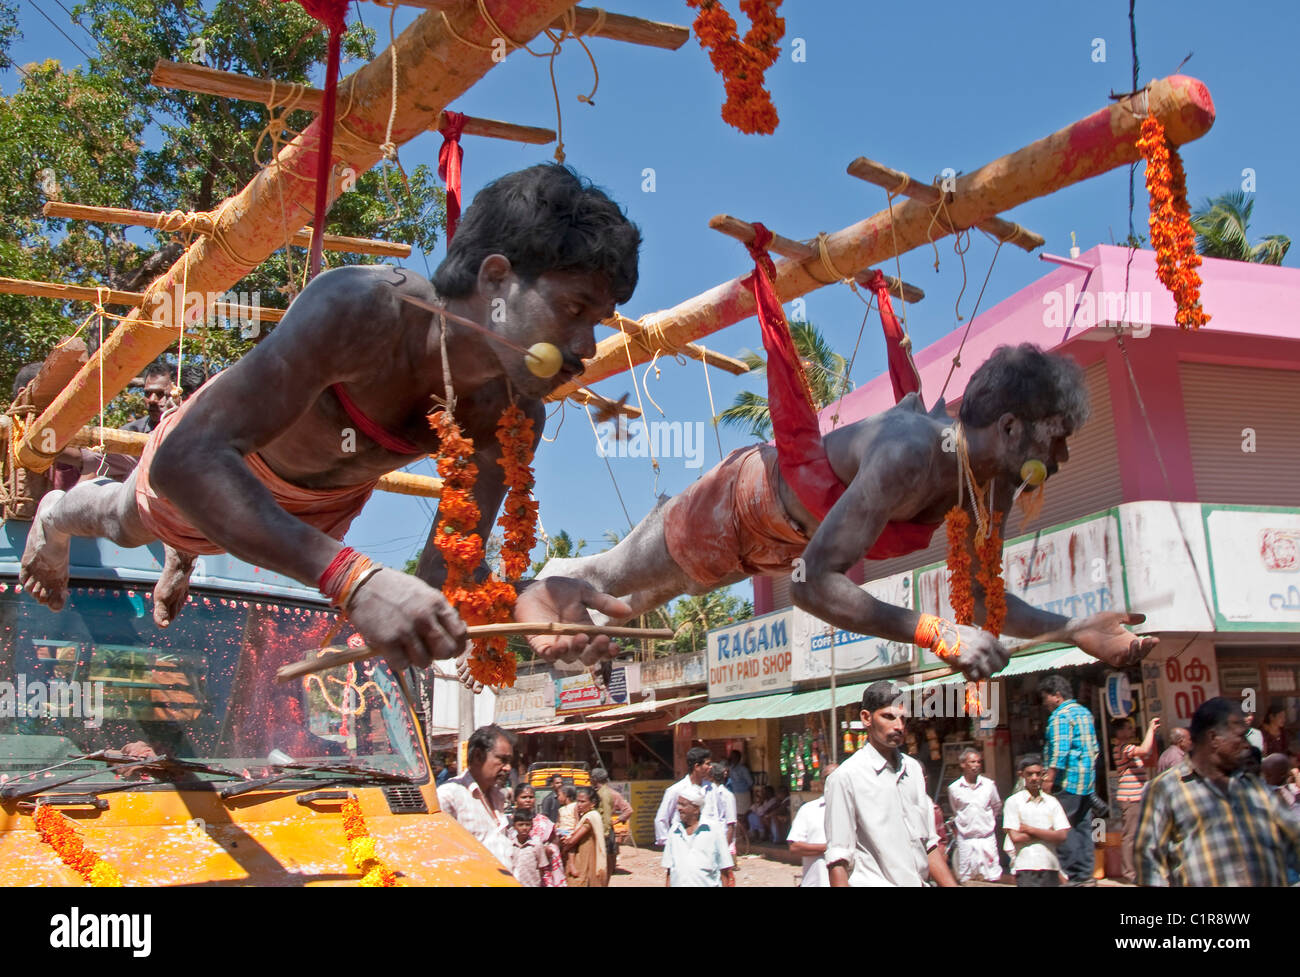 Tamil devotees suspended by fish hooks for Thaipusam Festival at Muruga or Murugan (Hindu god of war) Temple - Stock Image